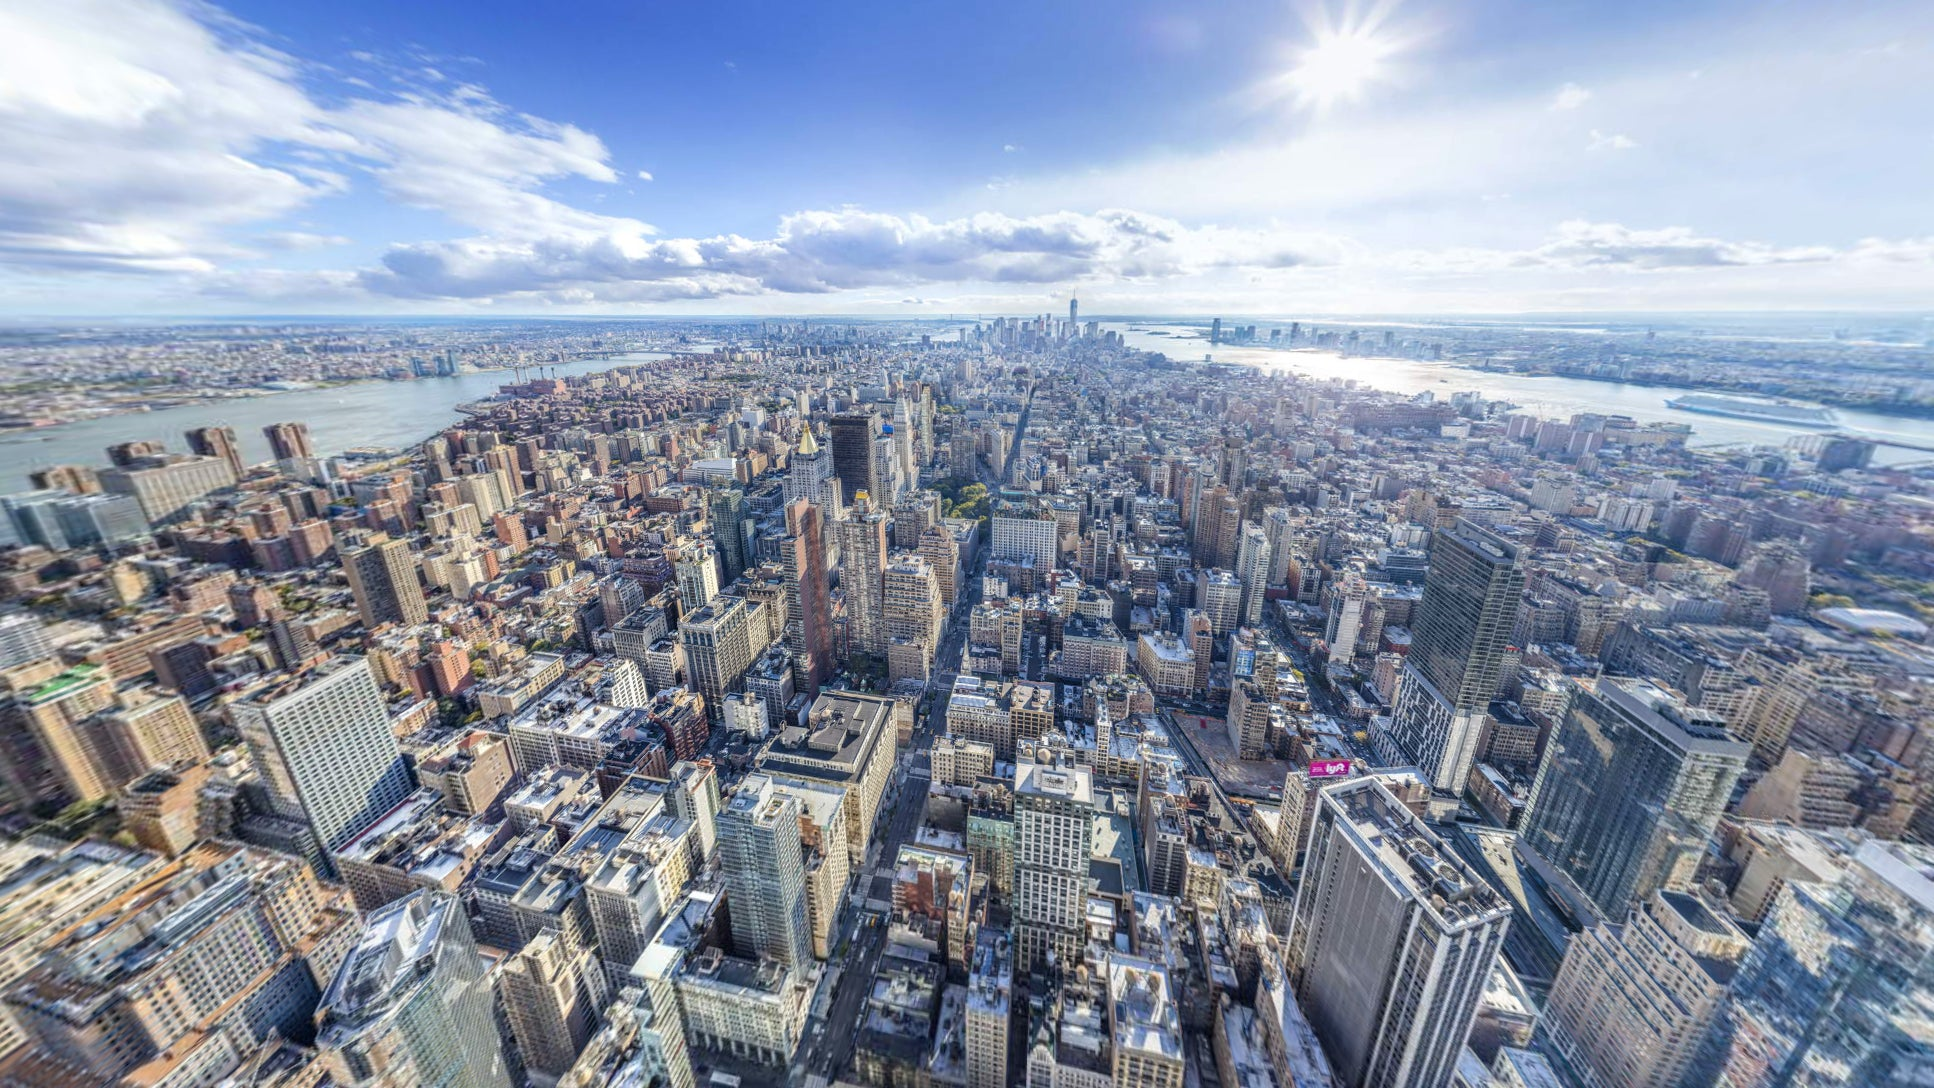 There Are Over 20 Billion Pixels in the Largest Photo of New York Ever Taken